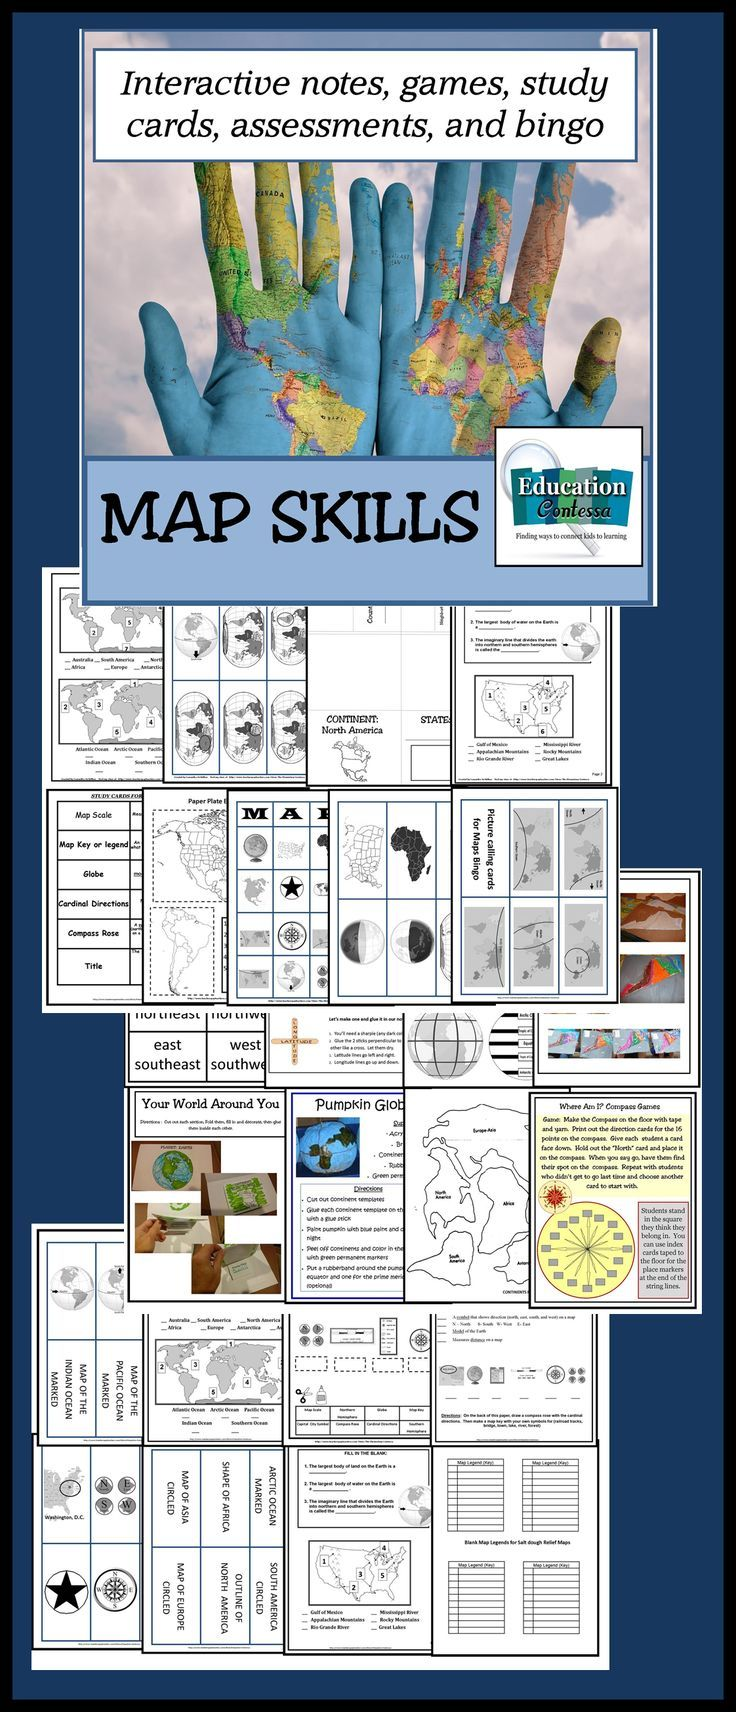 Map skills unit make geography fun with bingo map quiz map bingo game for 30pumpkin globe project symbol notes map quiz for continents and oceans map skills quiz study cards class games and activities gumiabroncs Gallery